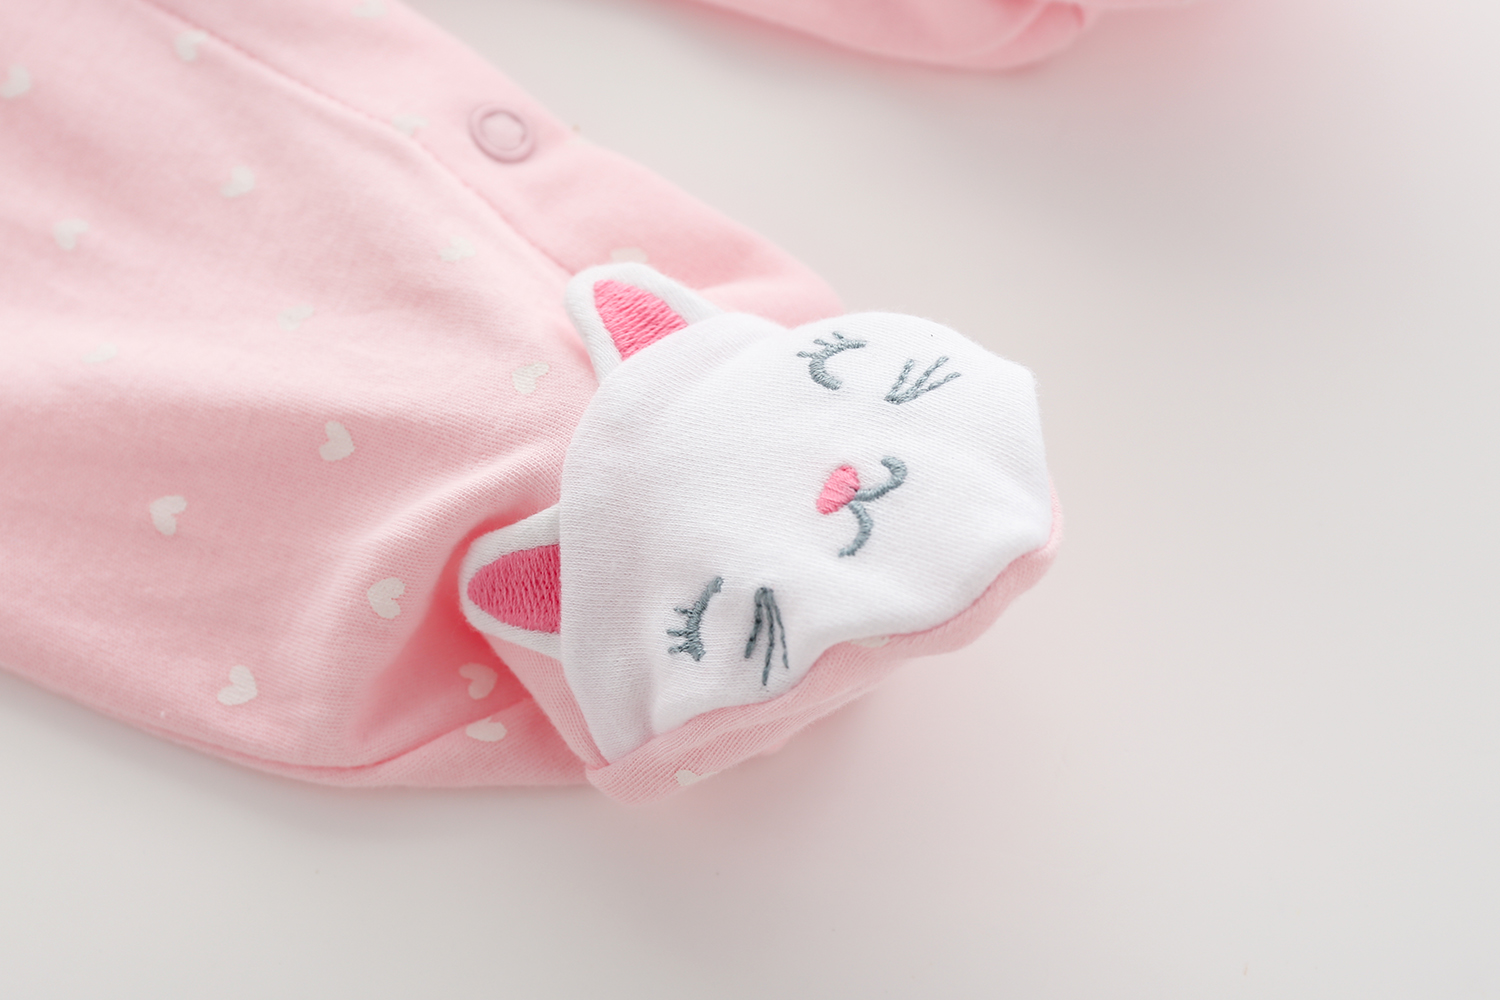 HTB1zy0REbGYBuNjy0Foq6AiBFXaW Newborn baby pajamas unicorn cotton romper boys clothes overalls romper infants bebes jumpsuit premature infant baby clothes